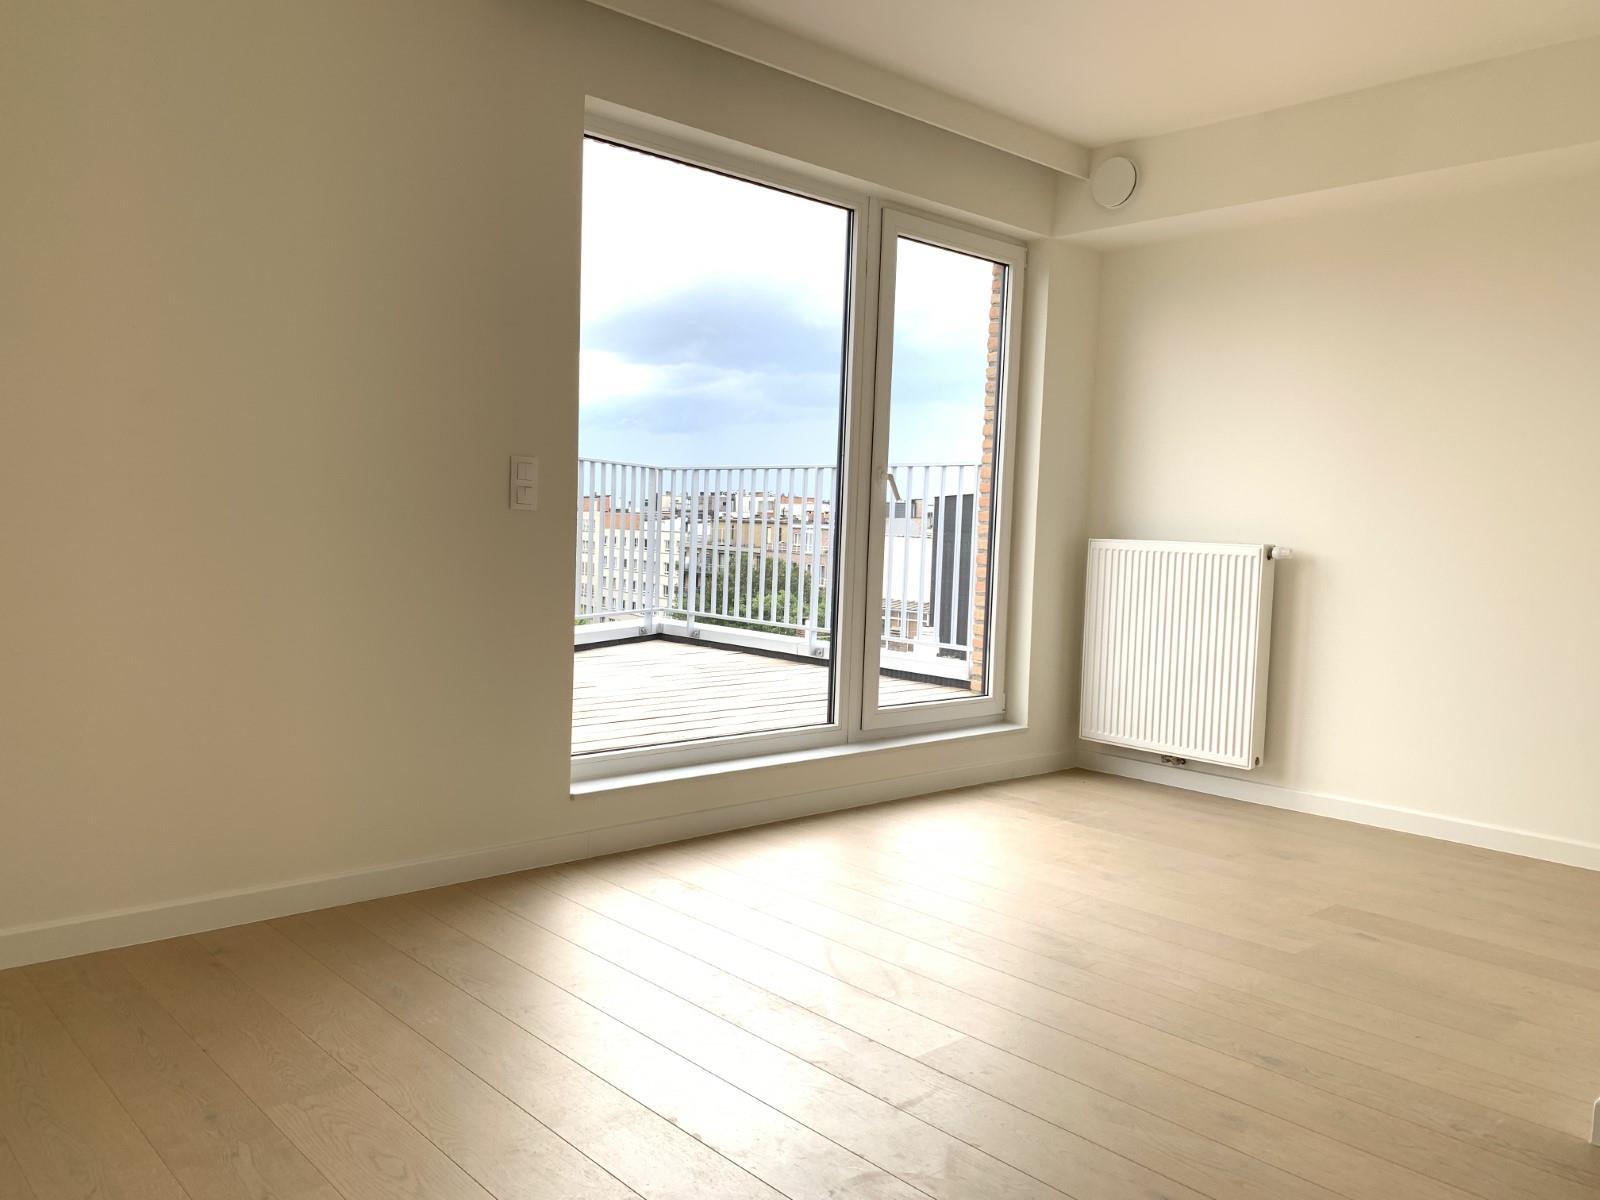 Appartement exceptionnel - Schaerbeek - #3875201-1